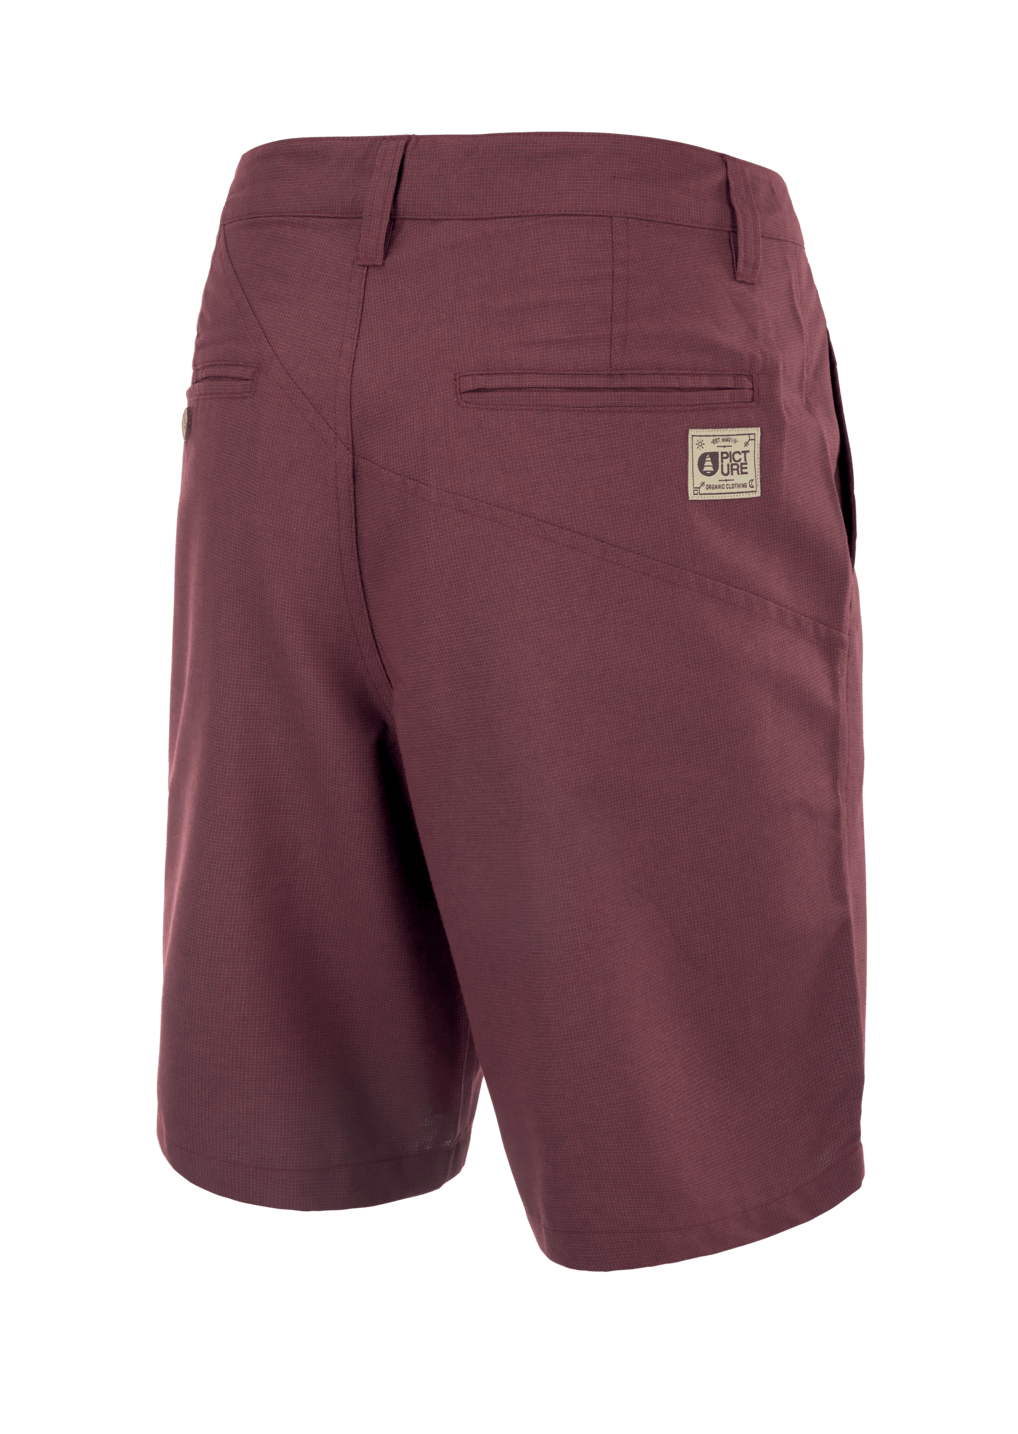 Short Picture Noas Burgundy